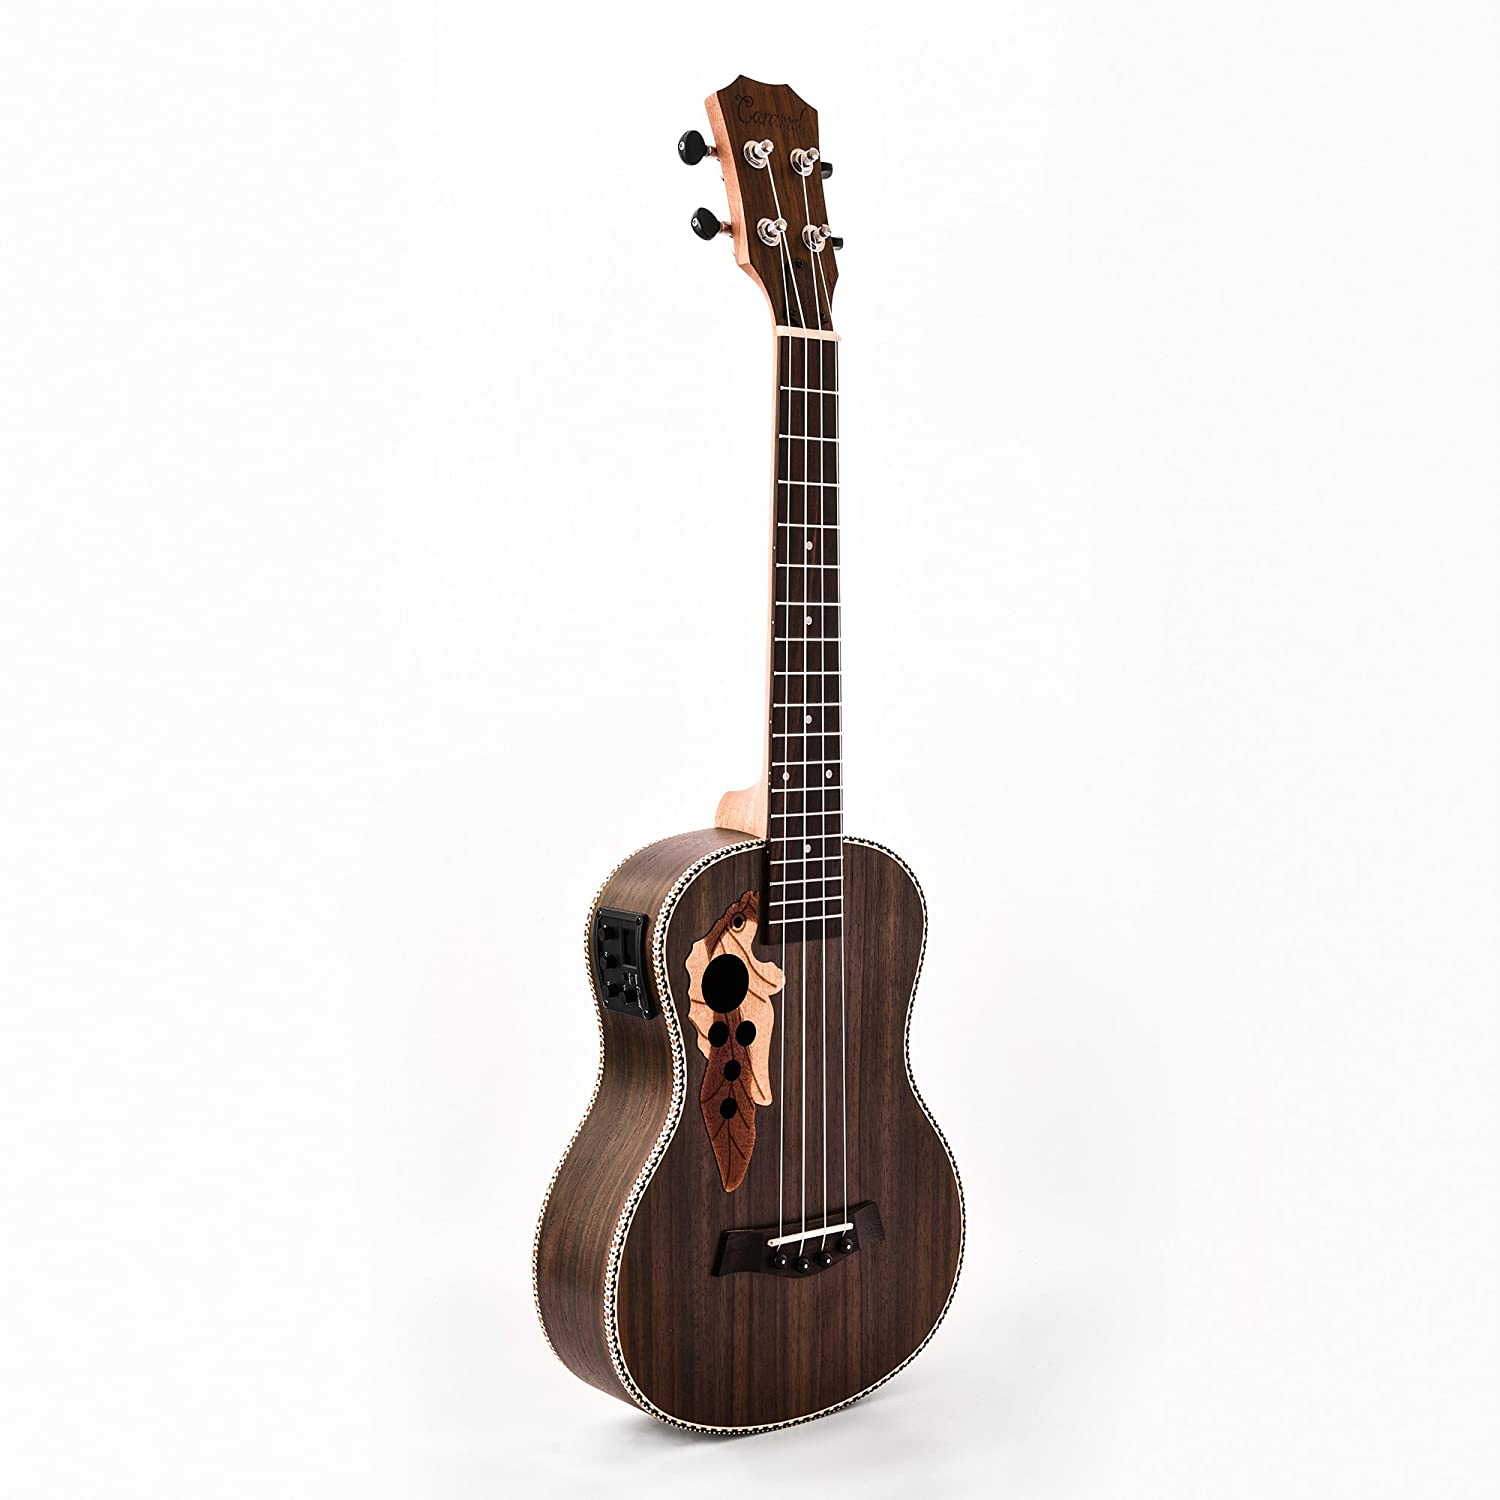 4. Caramel CB500 30 Inch All Rosewood Baritone Acoustic-Electric Ukulele